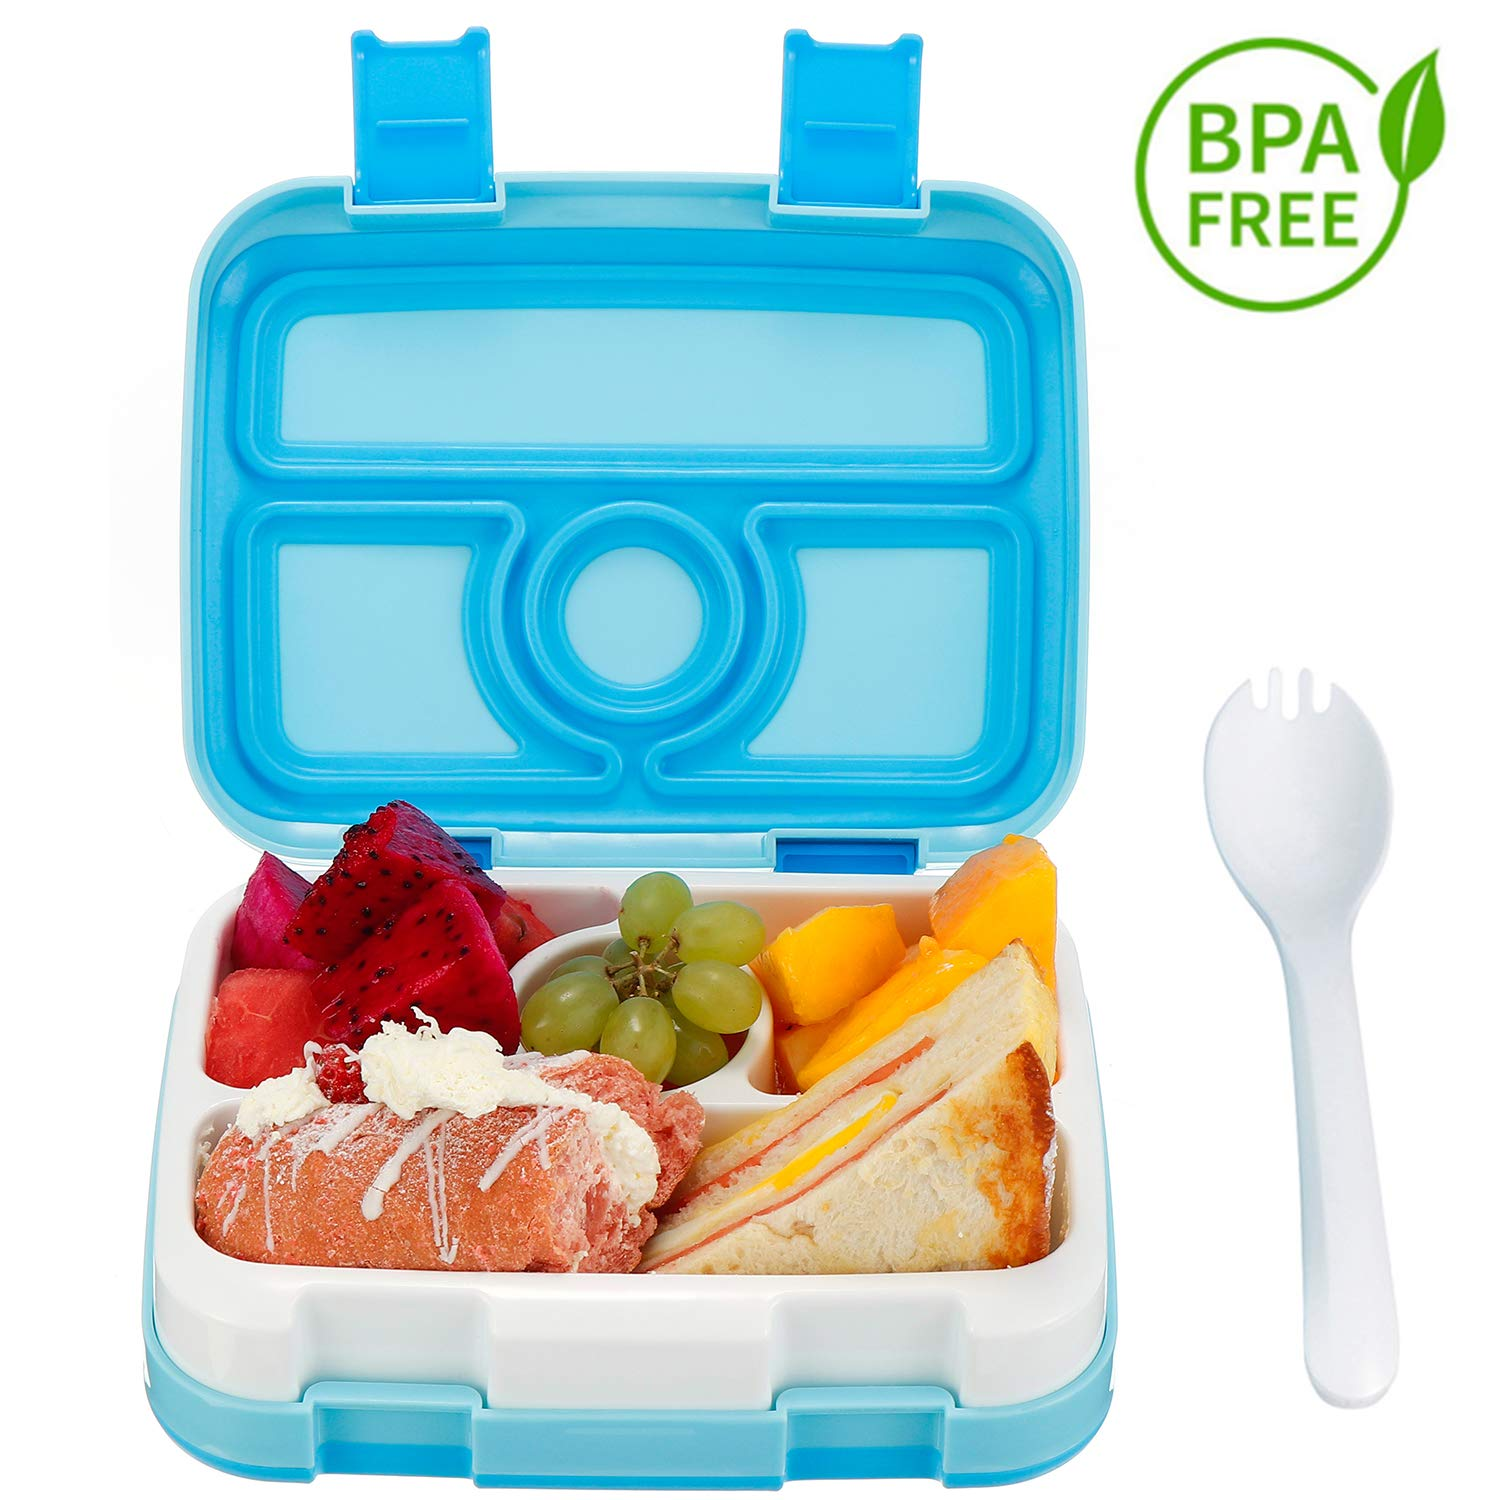 Comfook Lunch Box for Kids Blue BPA-Free Childrens Bento Box Lunch Container with Spoon 4 Compartment Leak Proof Durable for School Picnics Travel